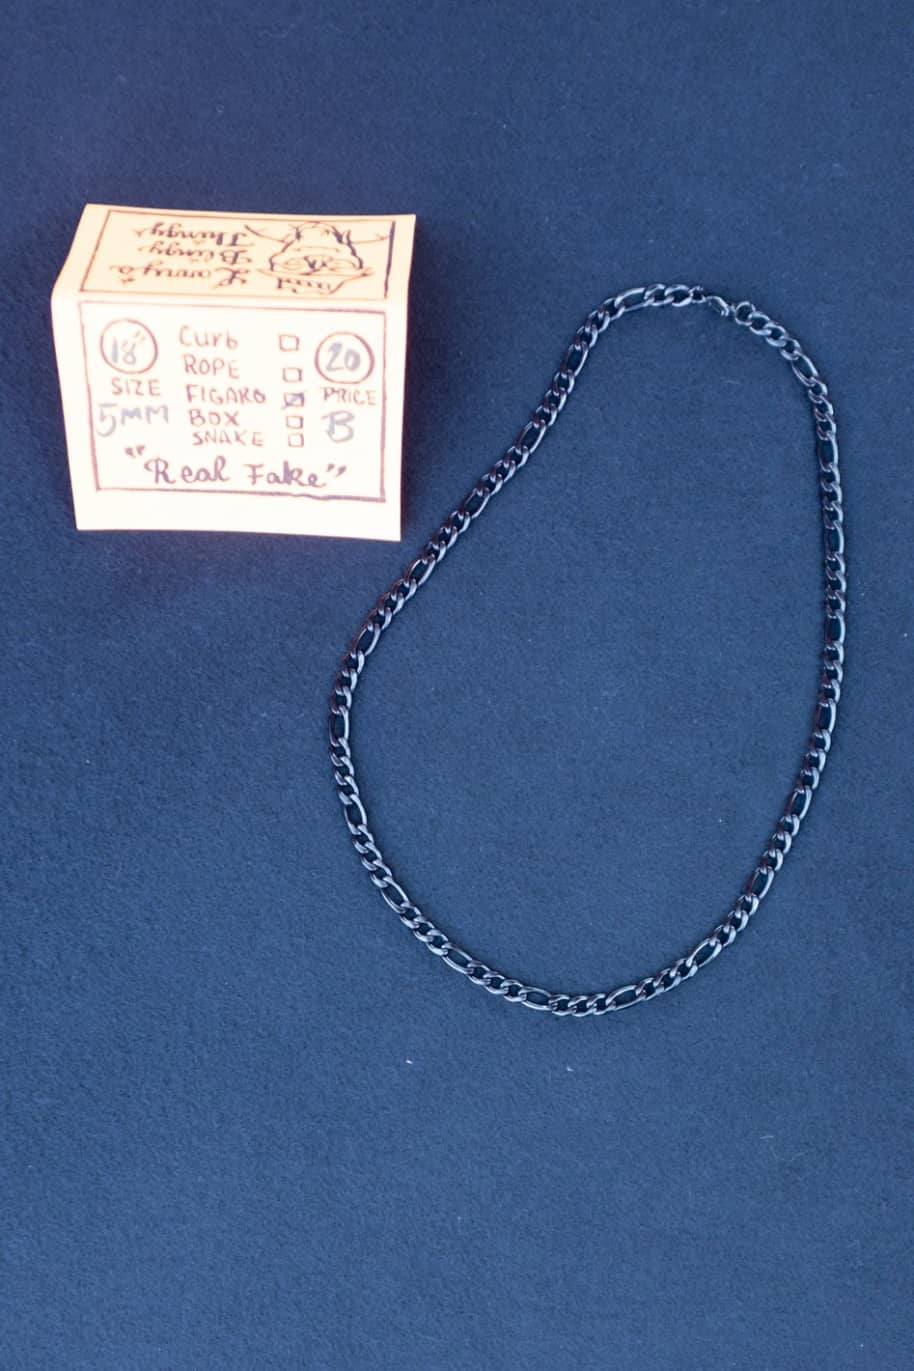 Figaro Necklace 18 inch 5 mm - Black | Jewellery by Larry's Blingy Thingy 1